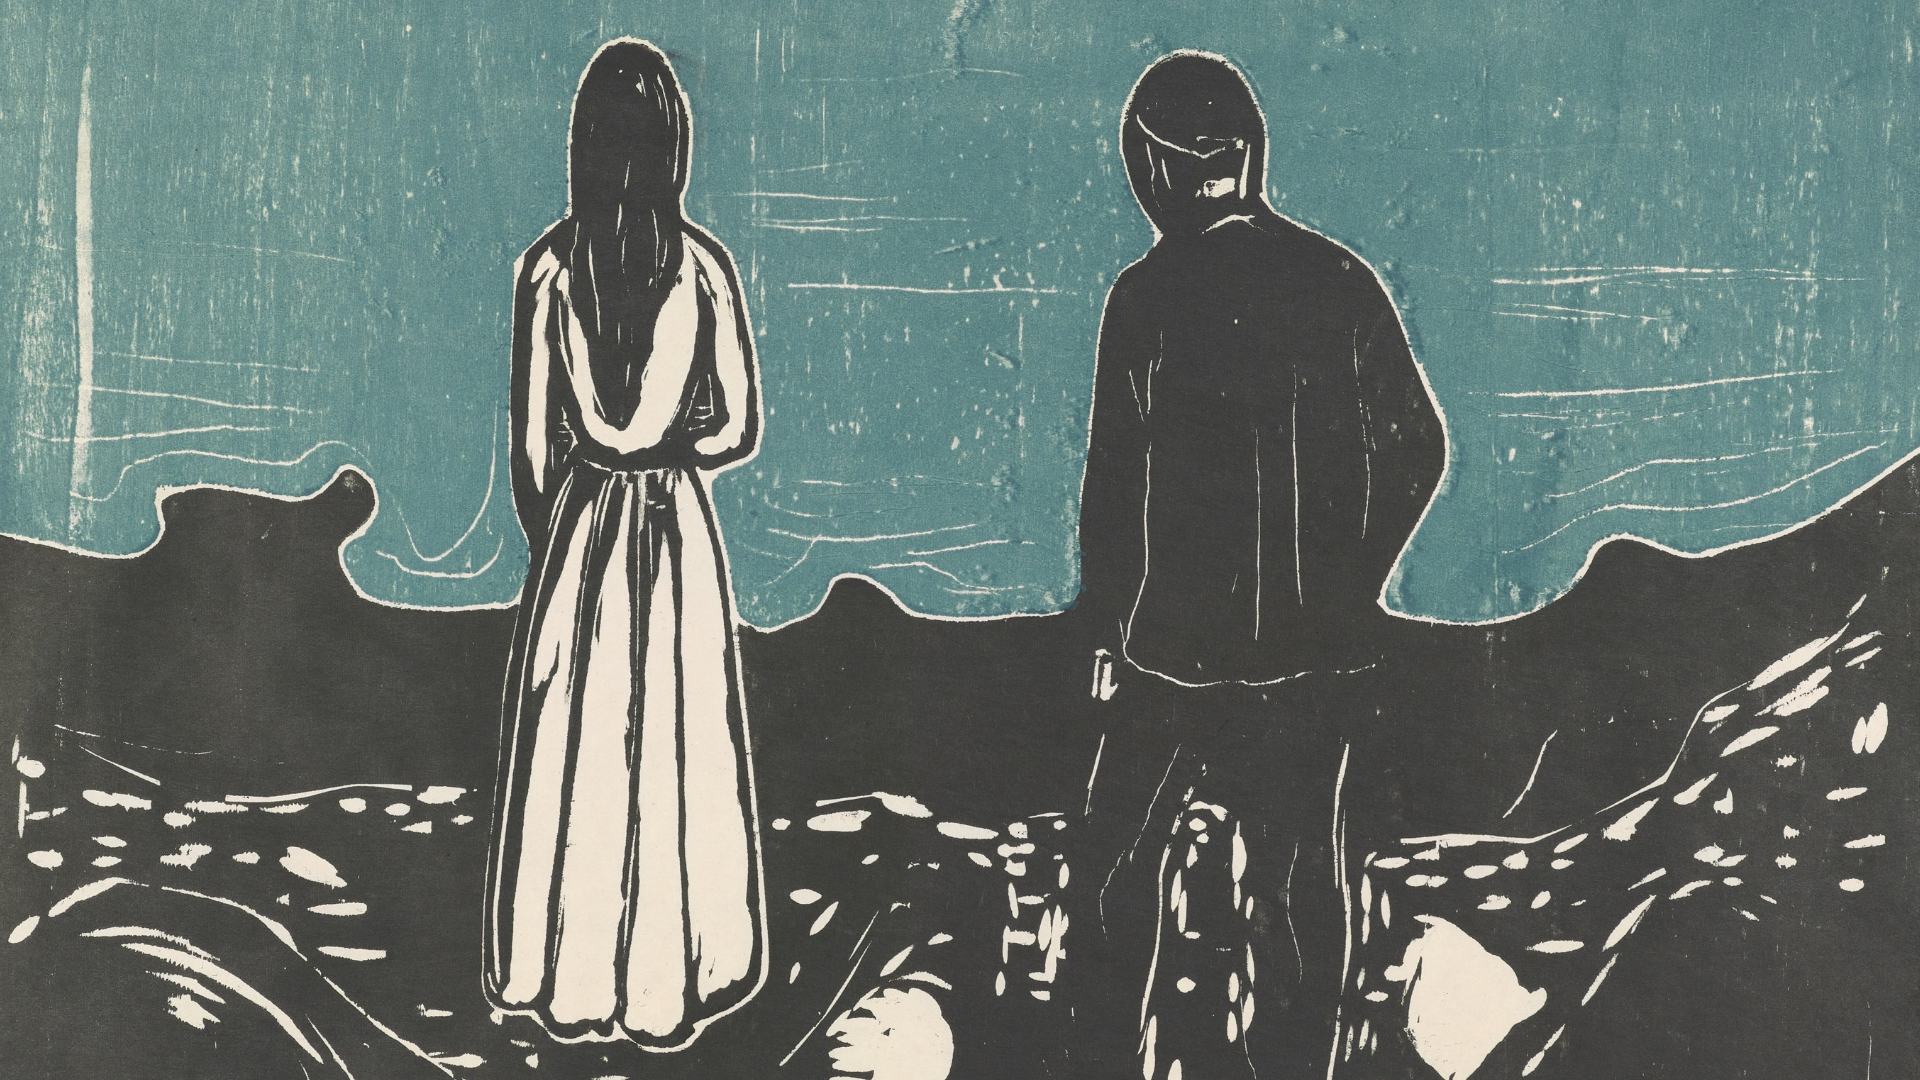 The Lonely Ones by Munch as part of the Edvard Munch: Love and Angst exhibition at the British Museum